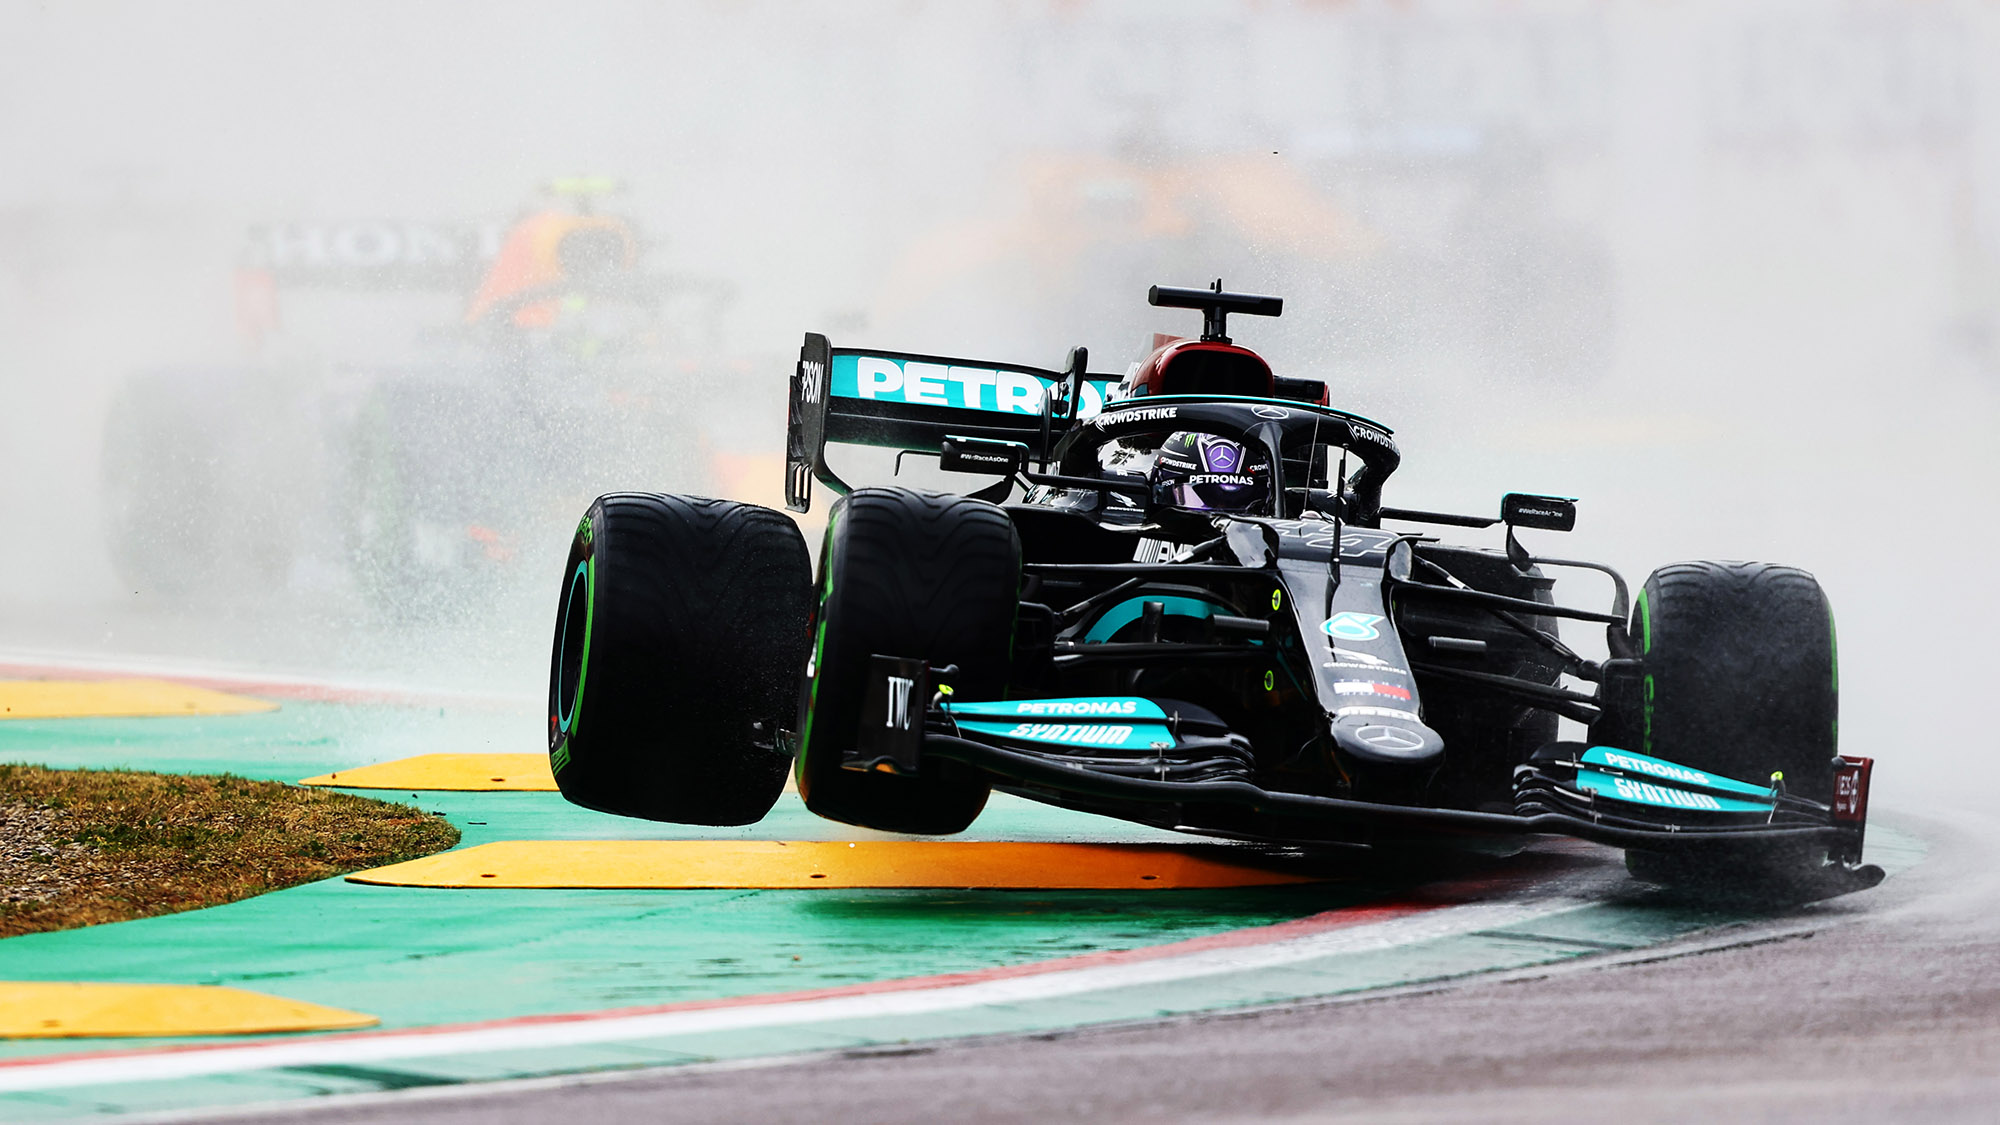 Lewis Hamilton crashes down onto a kerb at the start of the 2021 Emilia Romagna Grand Prix